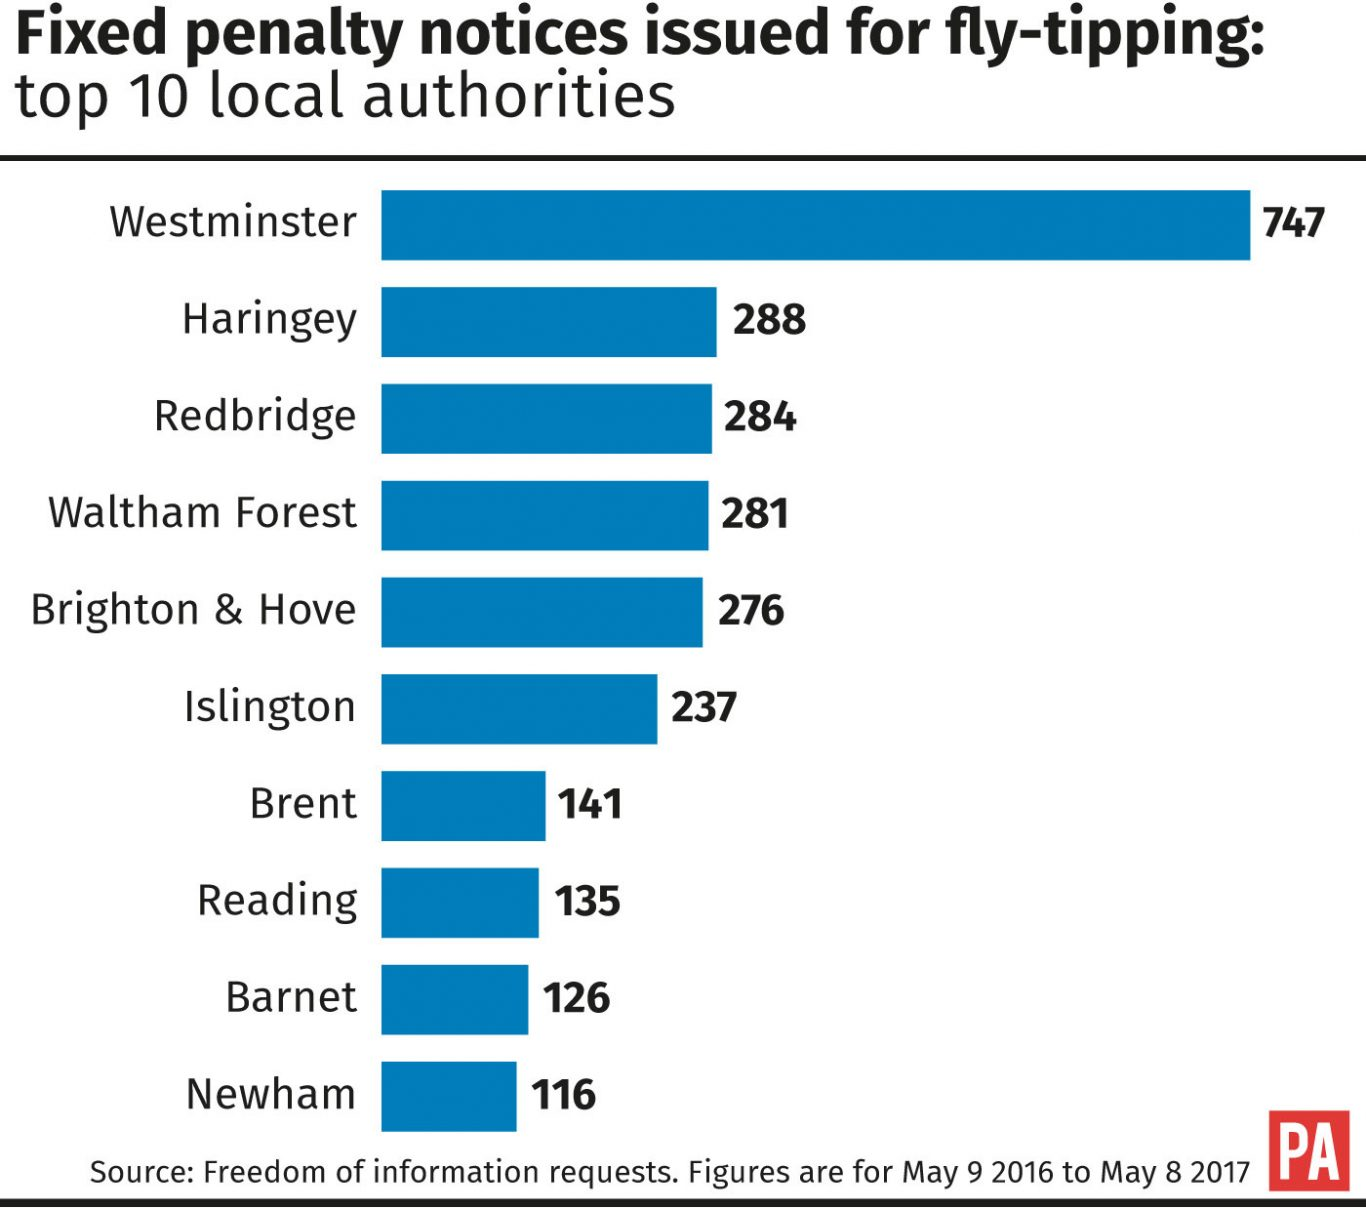 Fixed penalty notices issued for fly-tipping: top 10 local authorities